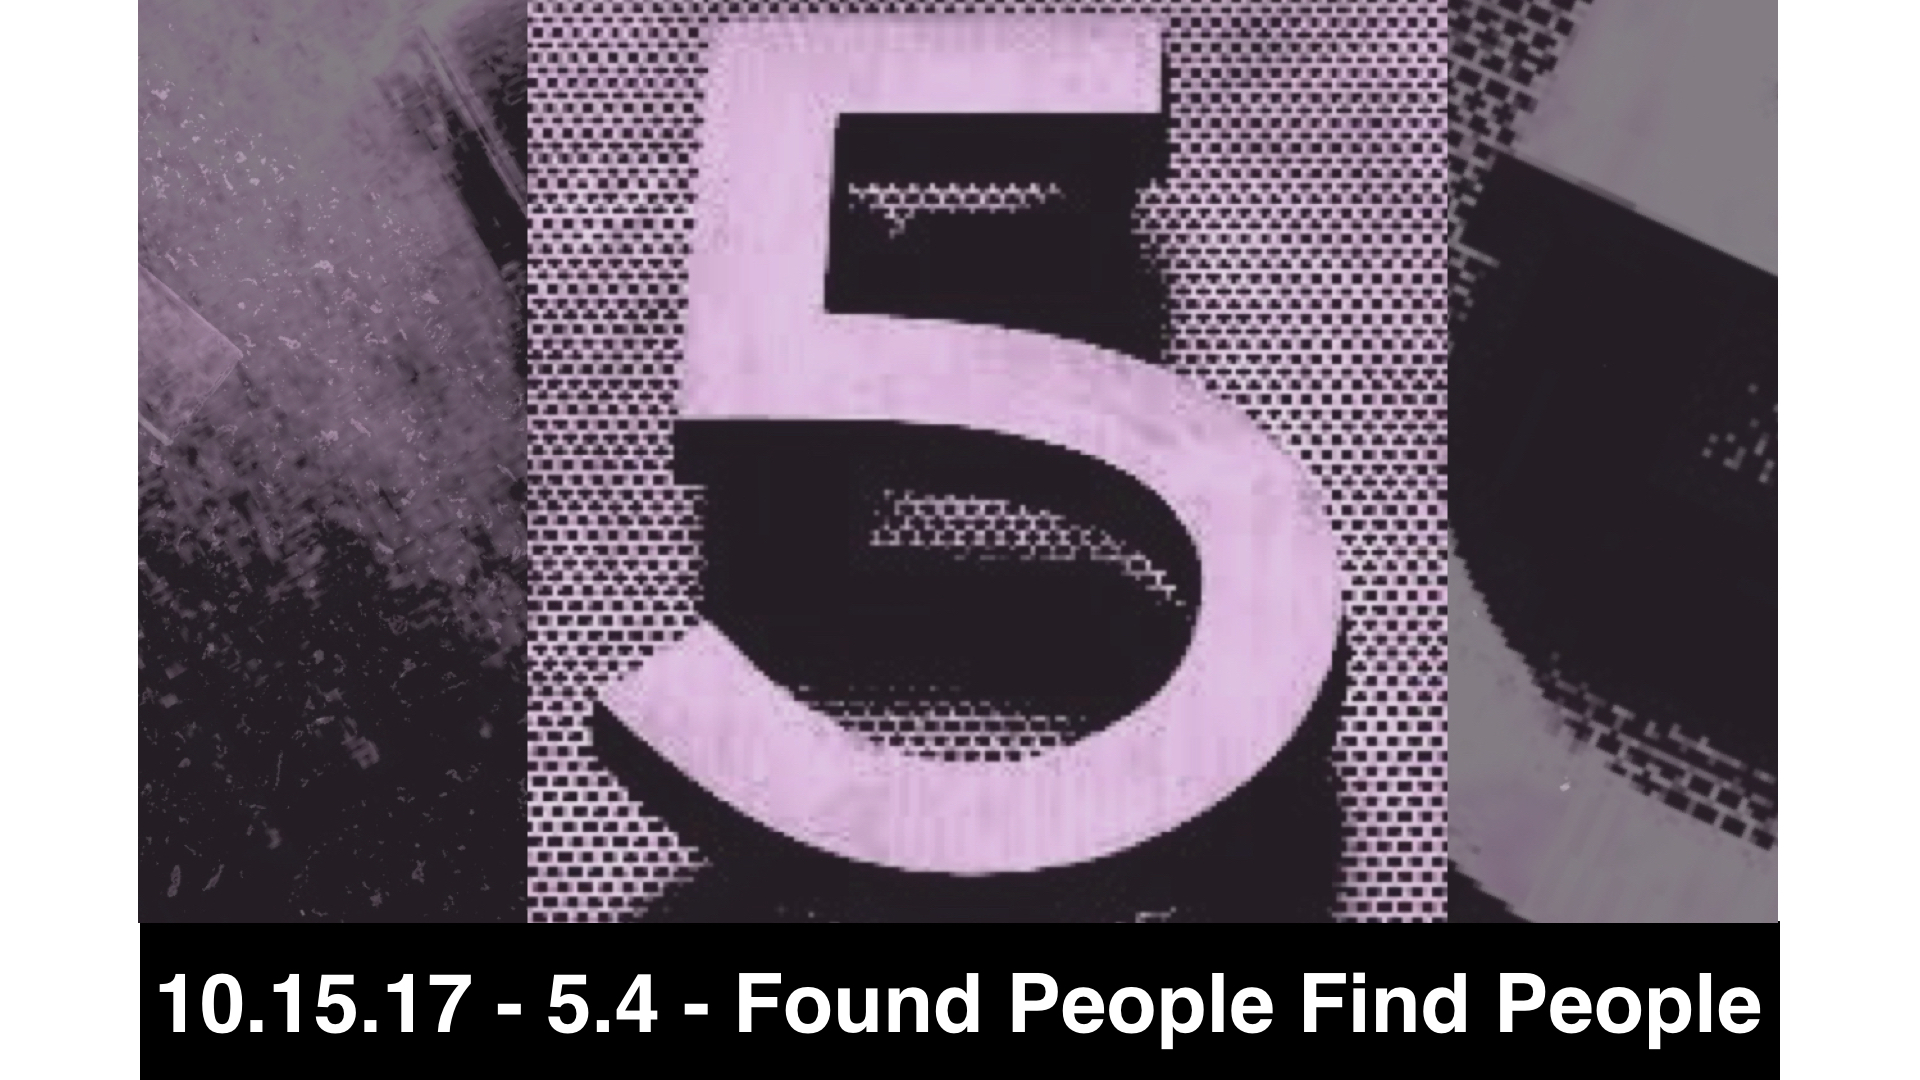 10.22.17 - 5.4 - Found People Find People